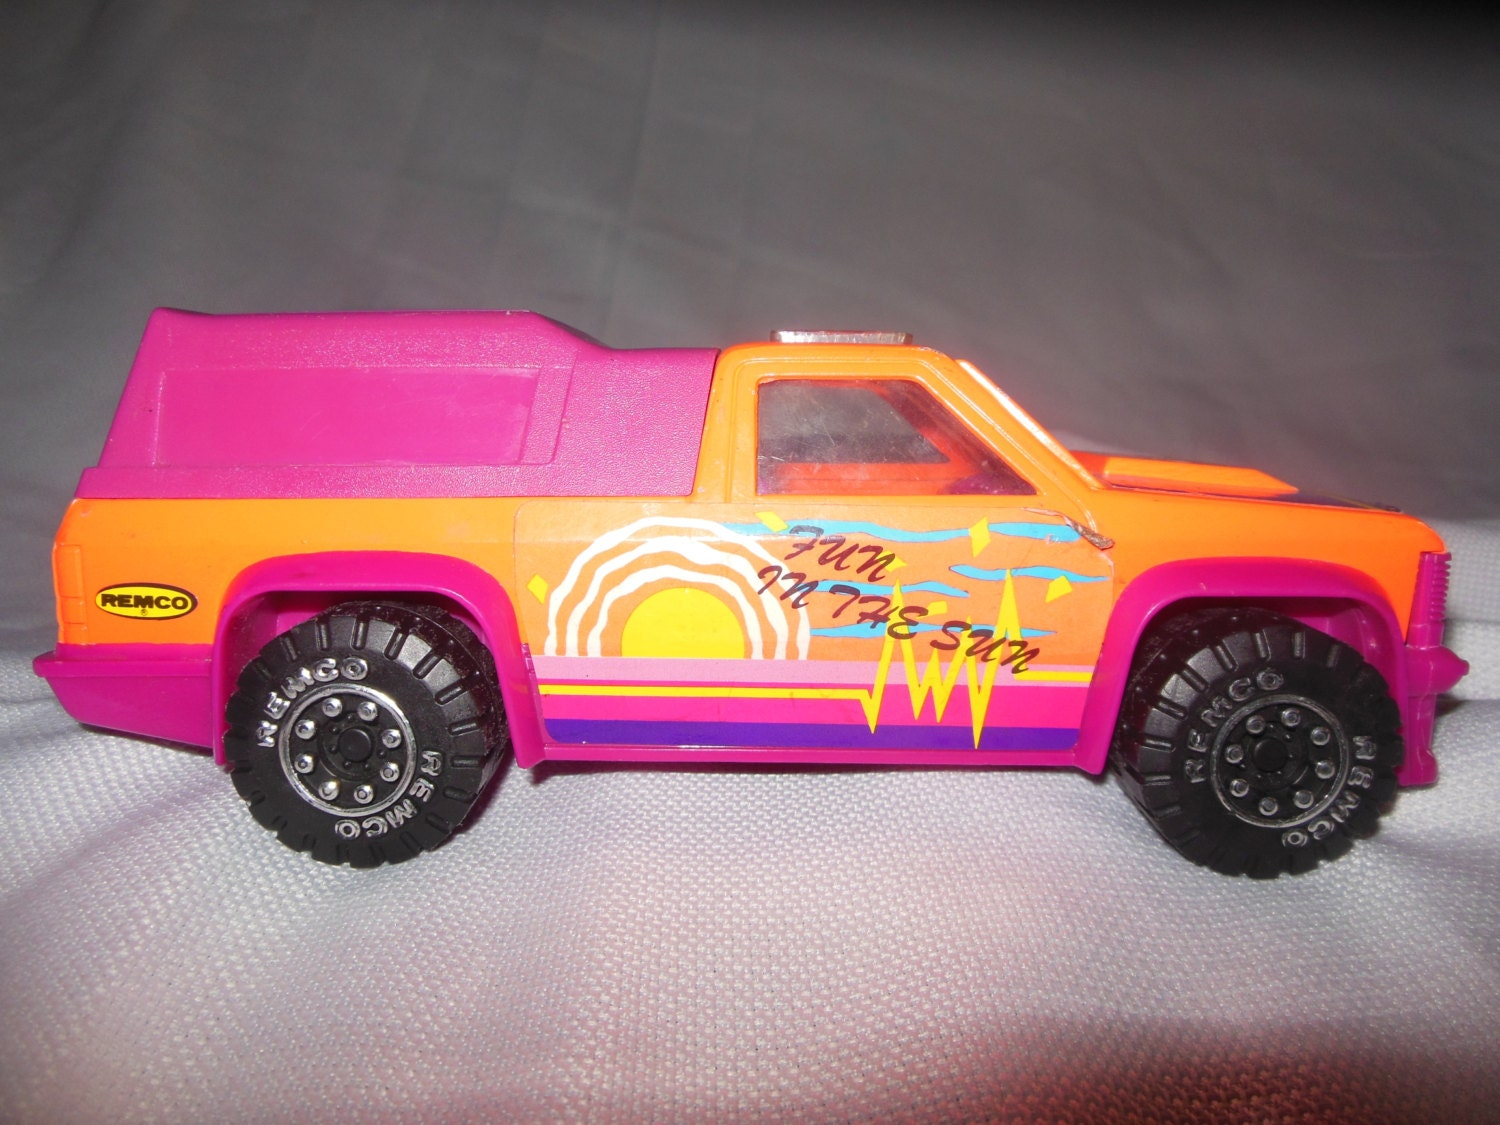 Electronic Toys 1980s 1980s Mini-truck Toy Vintage